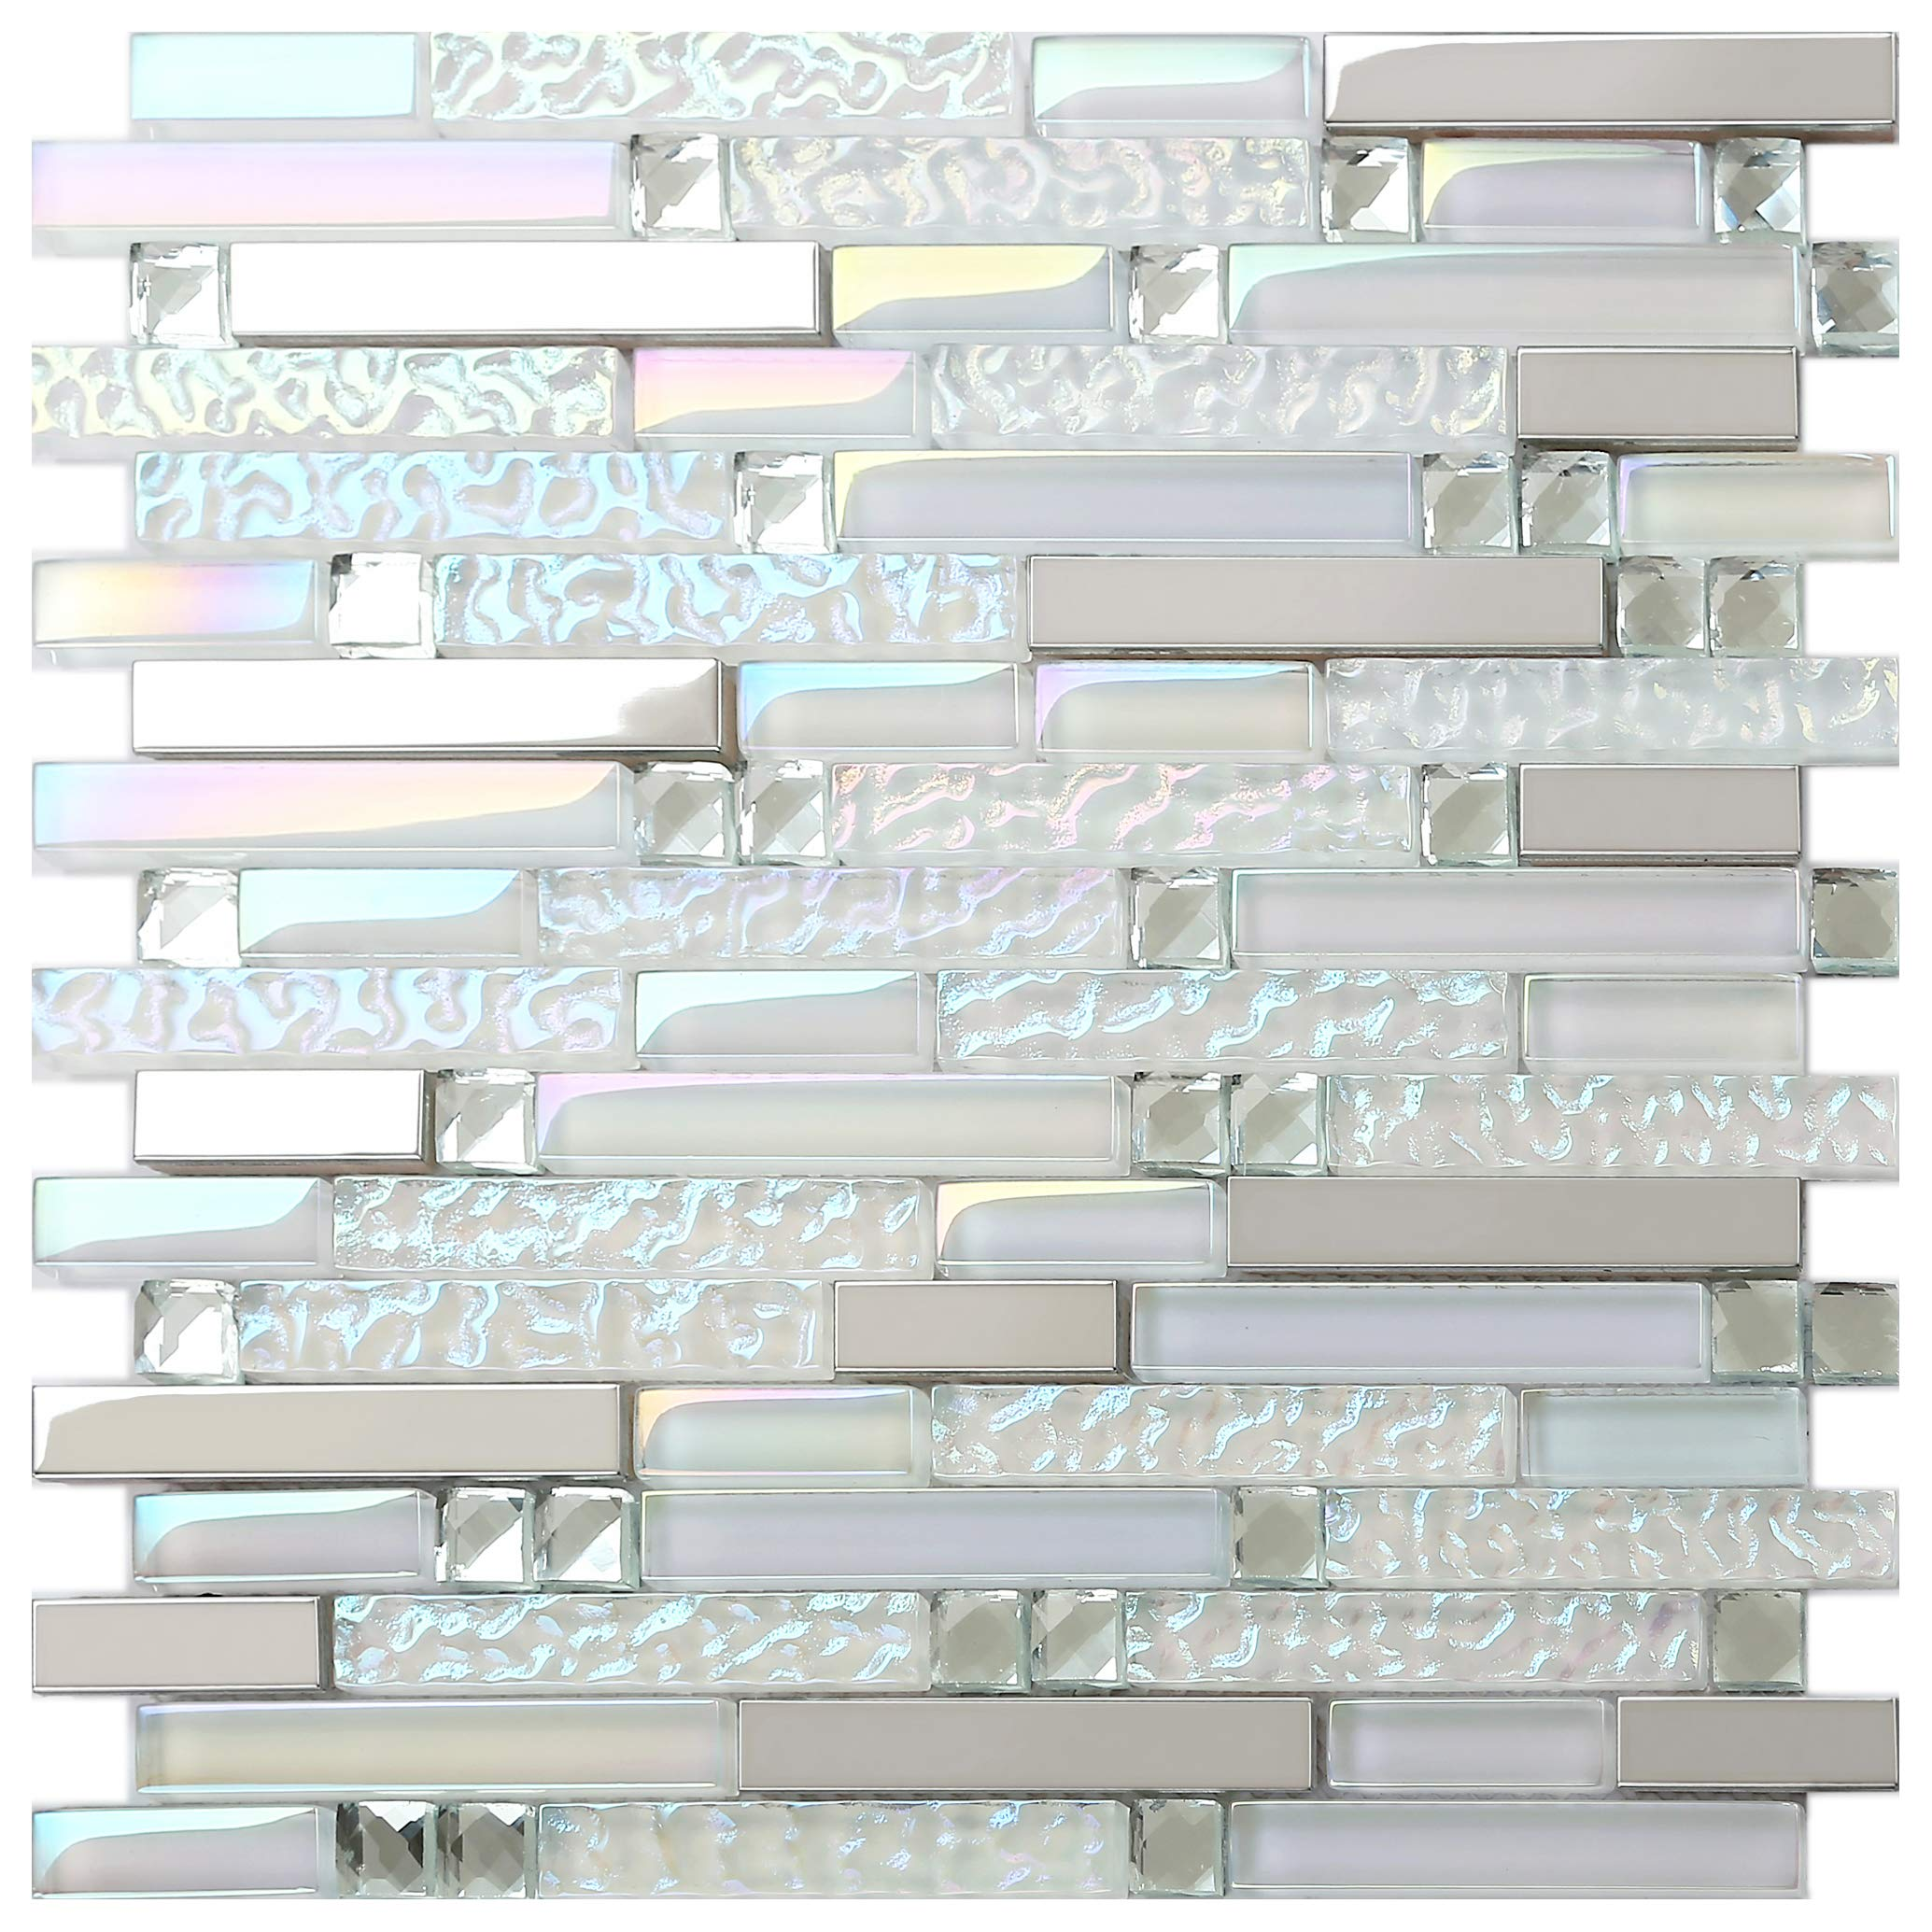 New Design TST Glass Metal Tile Iridescent White Glass Silver Mirror Stainless Steel Blends Interlocking Strip Wall Tiles TSTNB01 (10 Square Feet) by BLUJELLYFISH